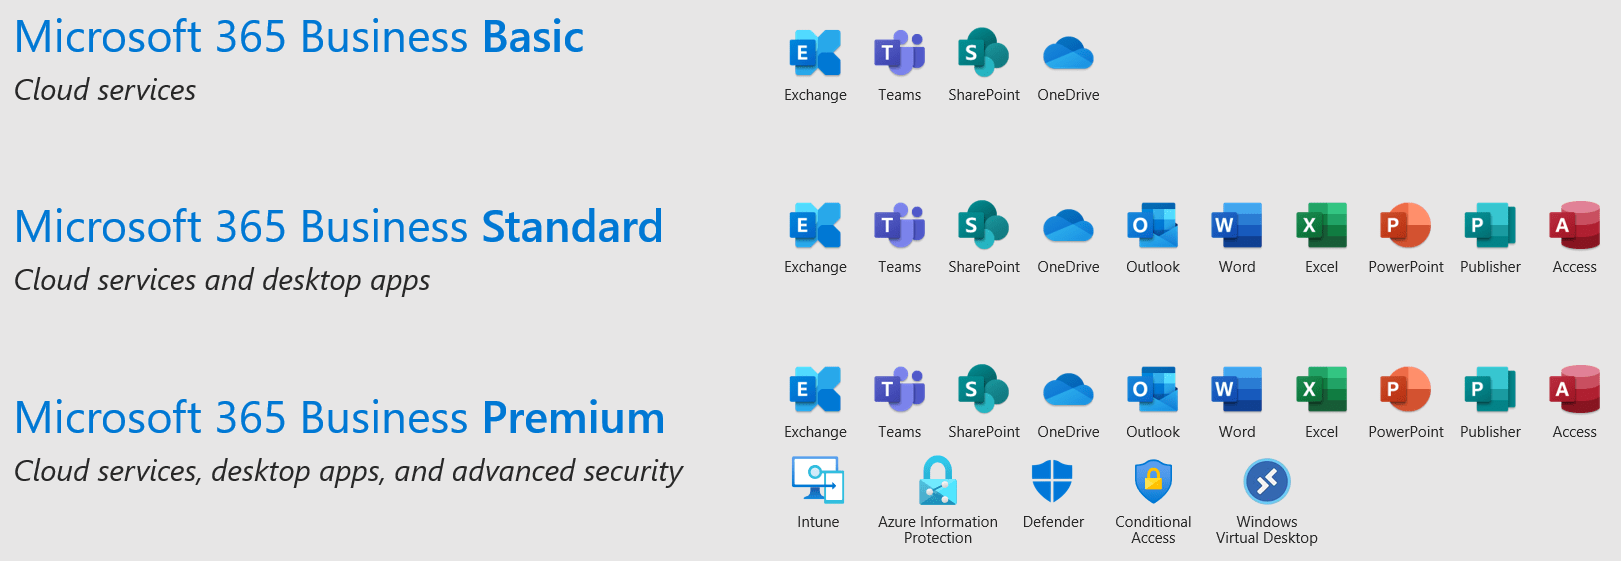 Office 365 name change 2